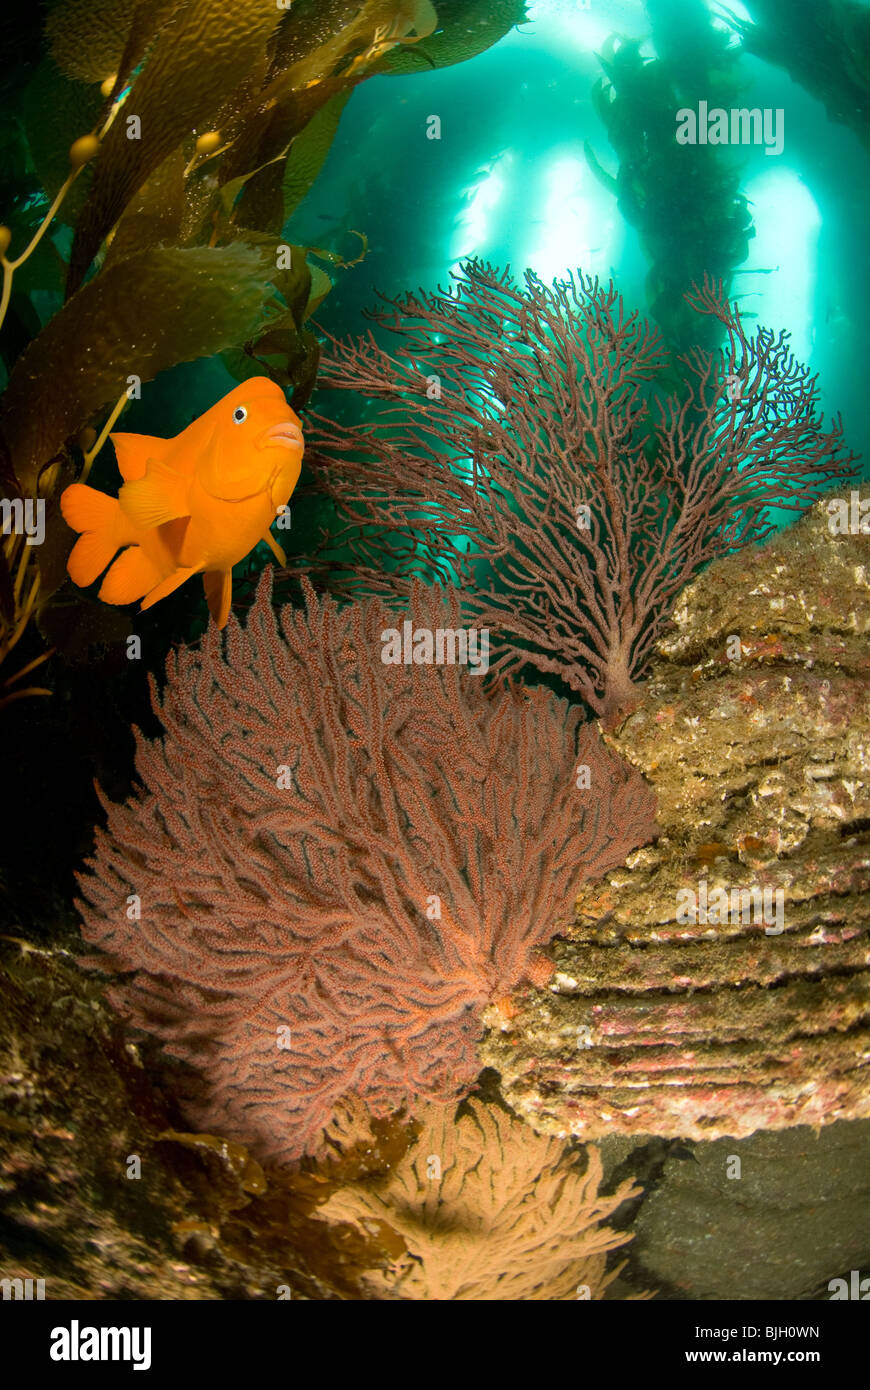 An orange Garibaldi fish swims over a reef with sea fans, kelp and blue water. - Stock Image